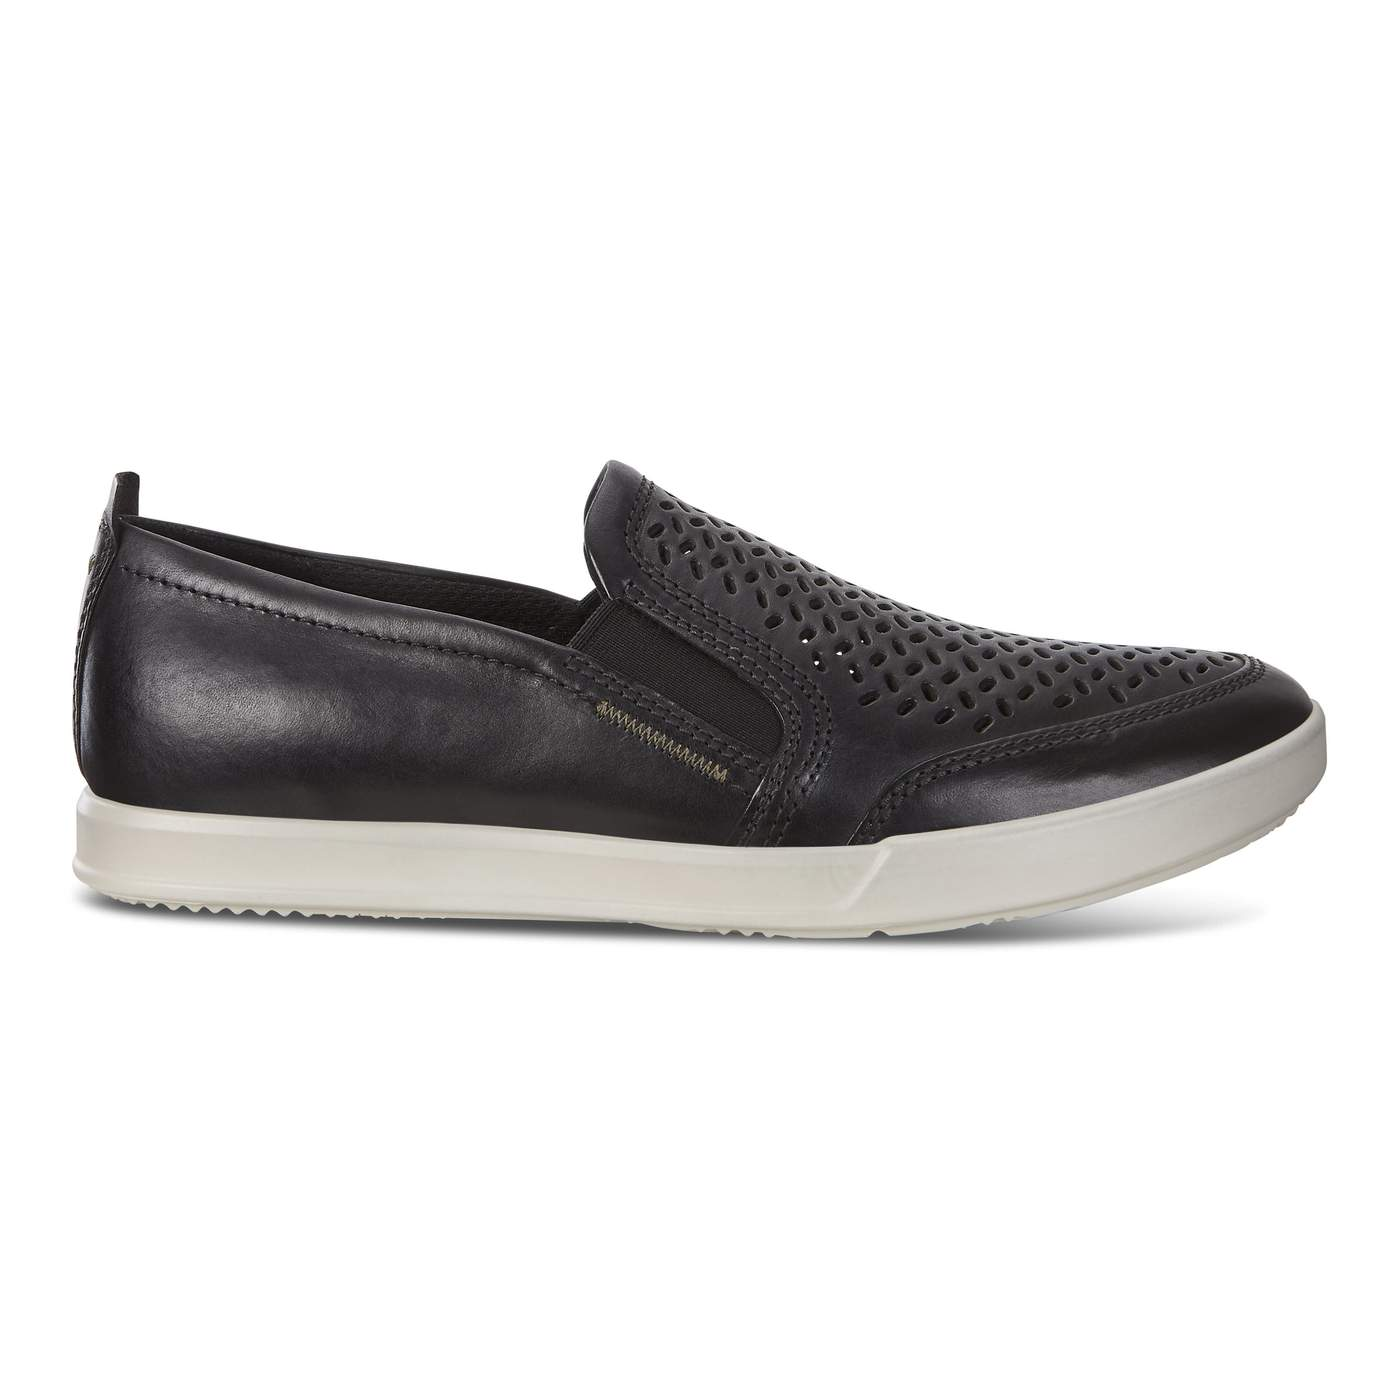 Ecco: Extra 40% Off Sale Shoes: Men's Collin 2.0 Slip-On Shoes